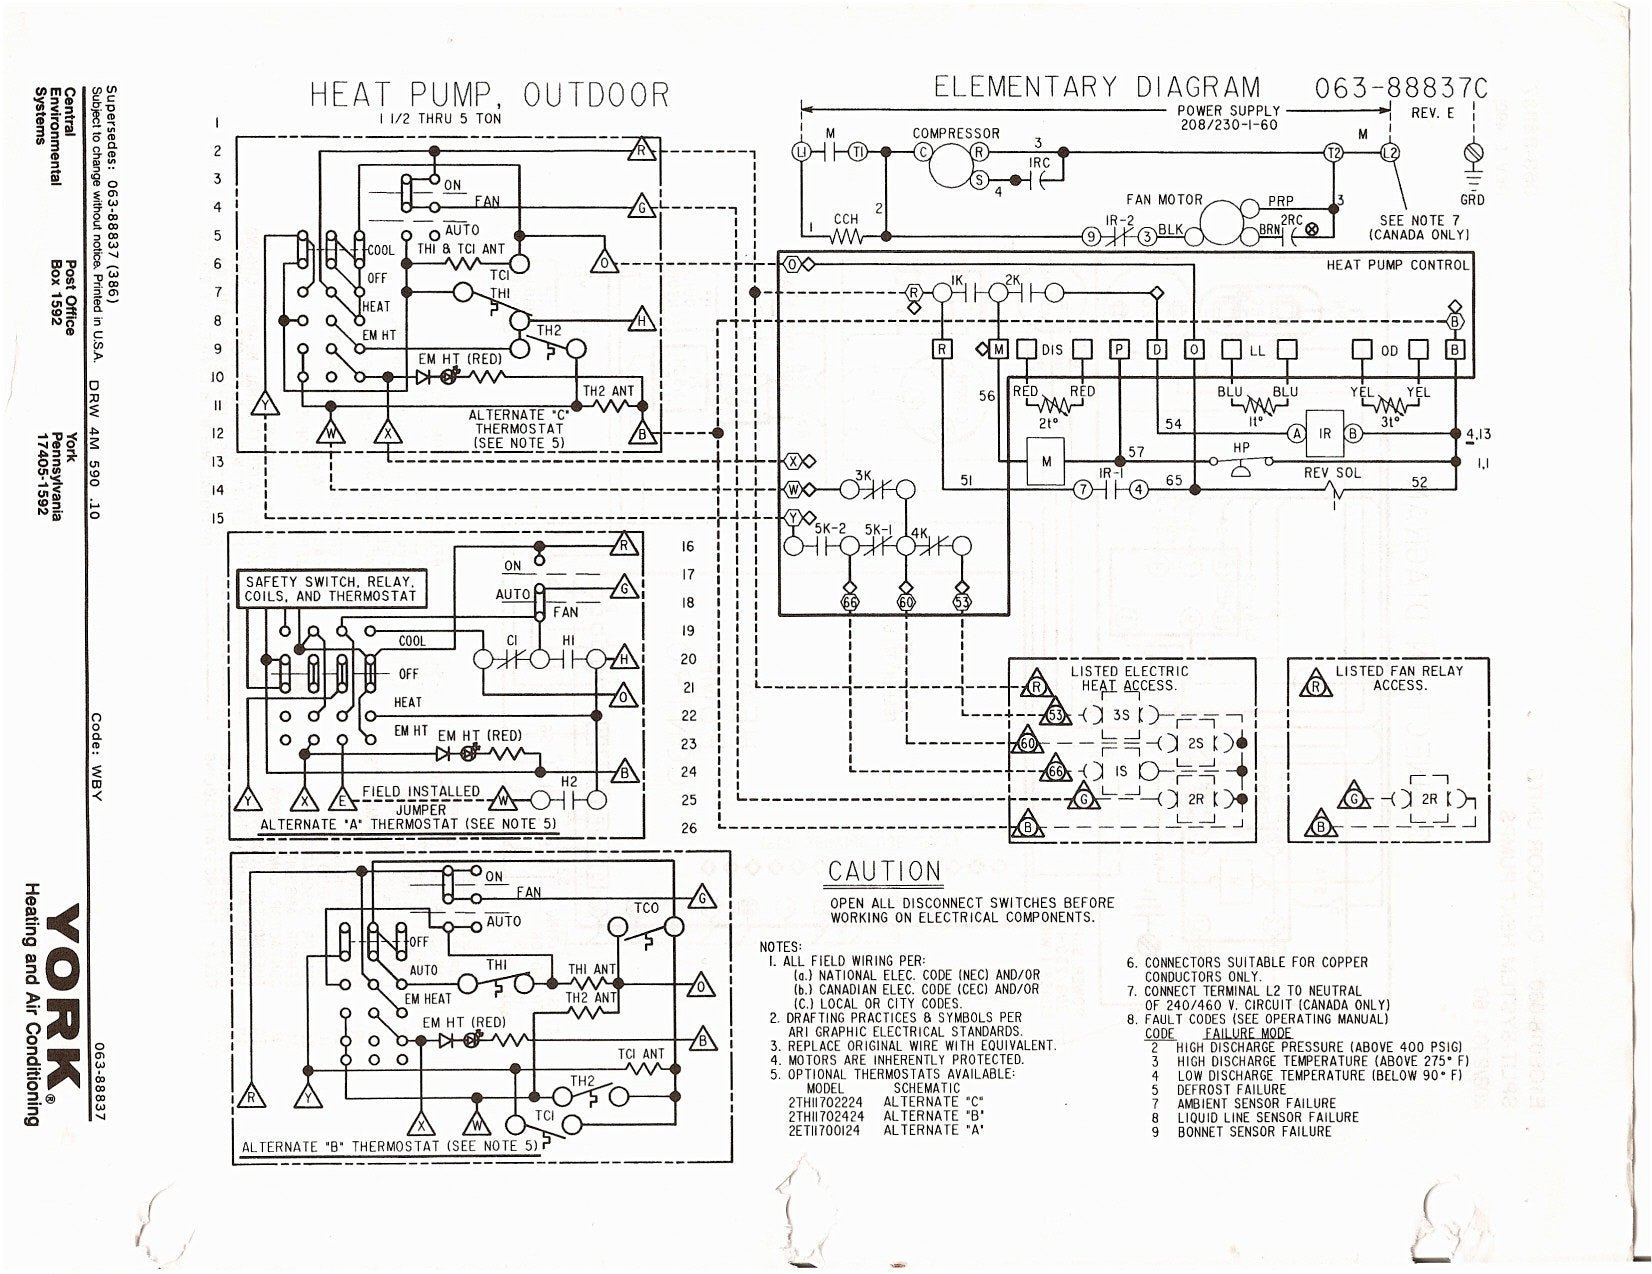 goodman aruf air handler wiring diagram  wiring diagram